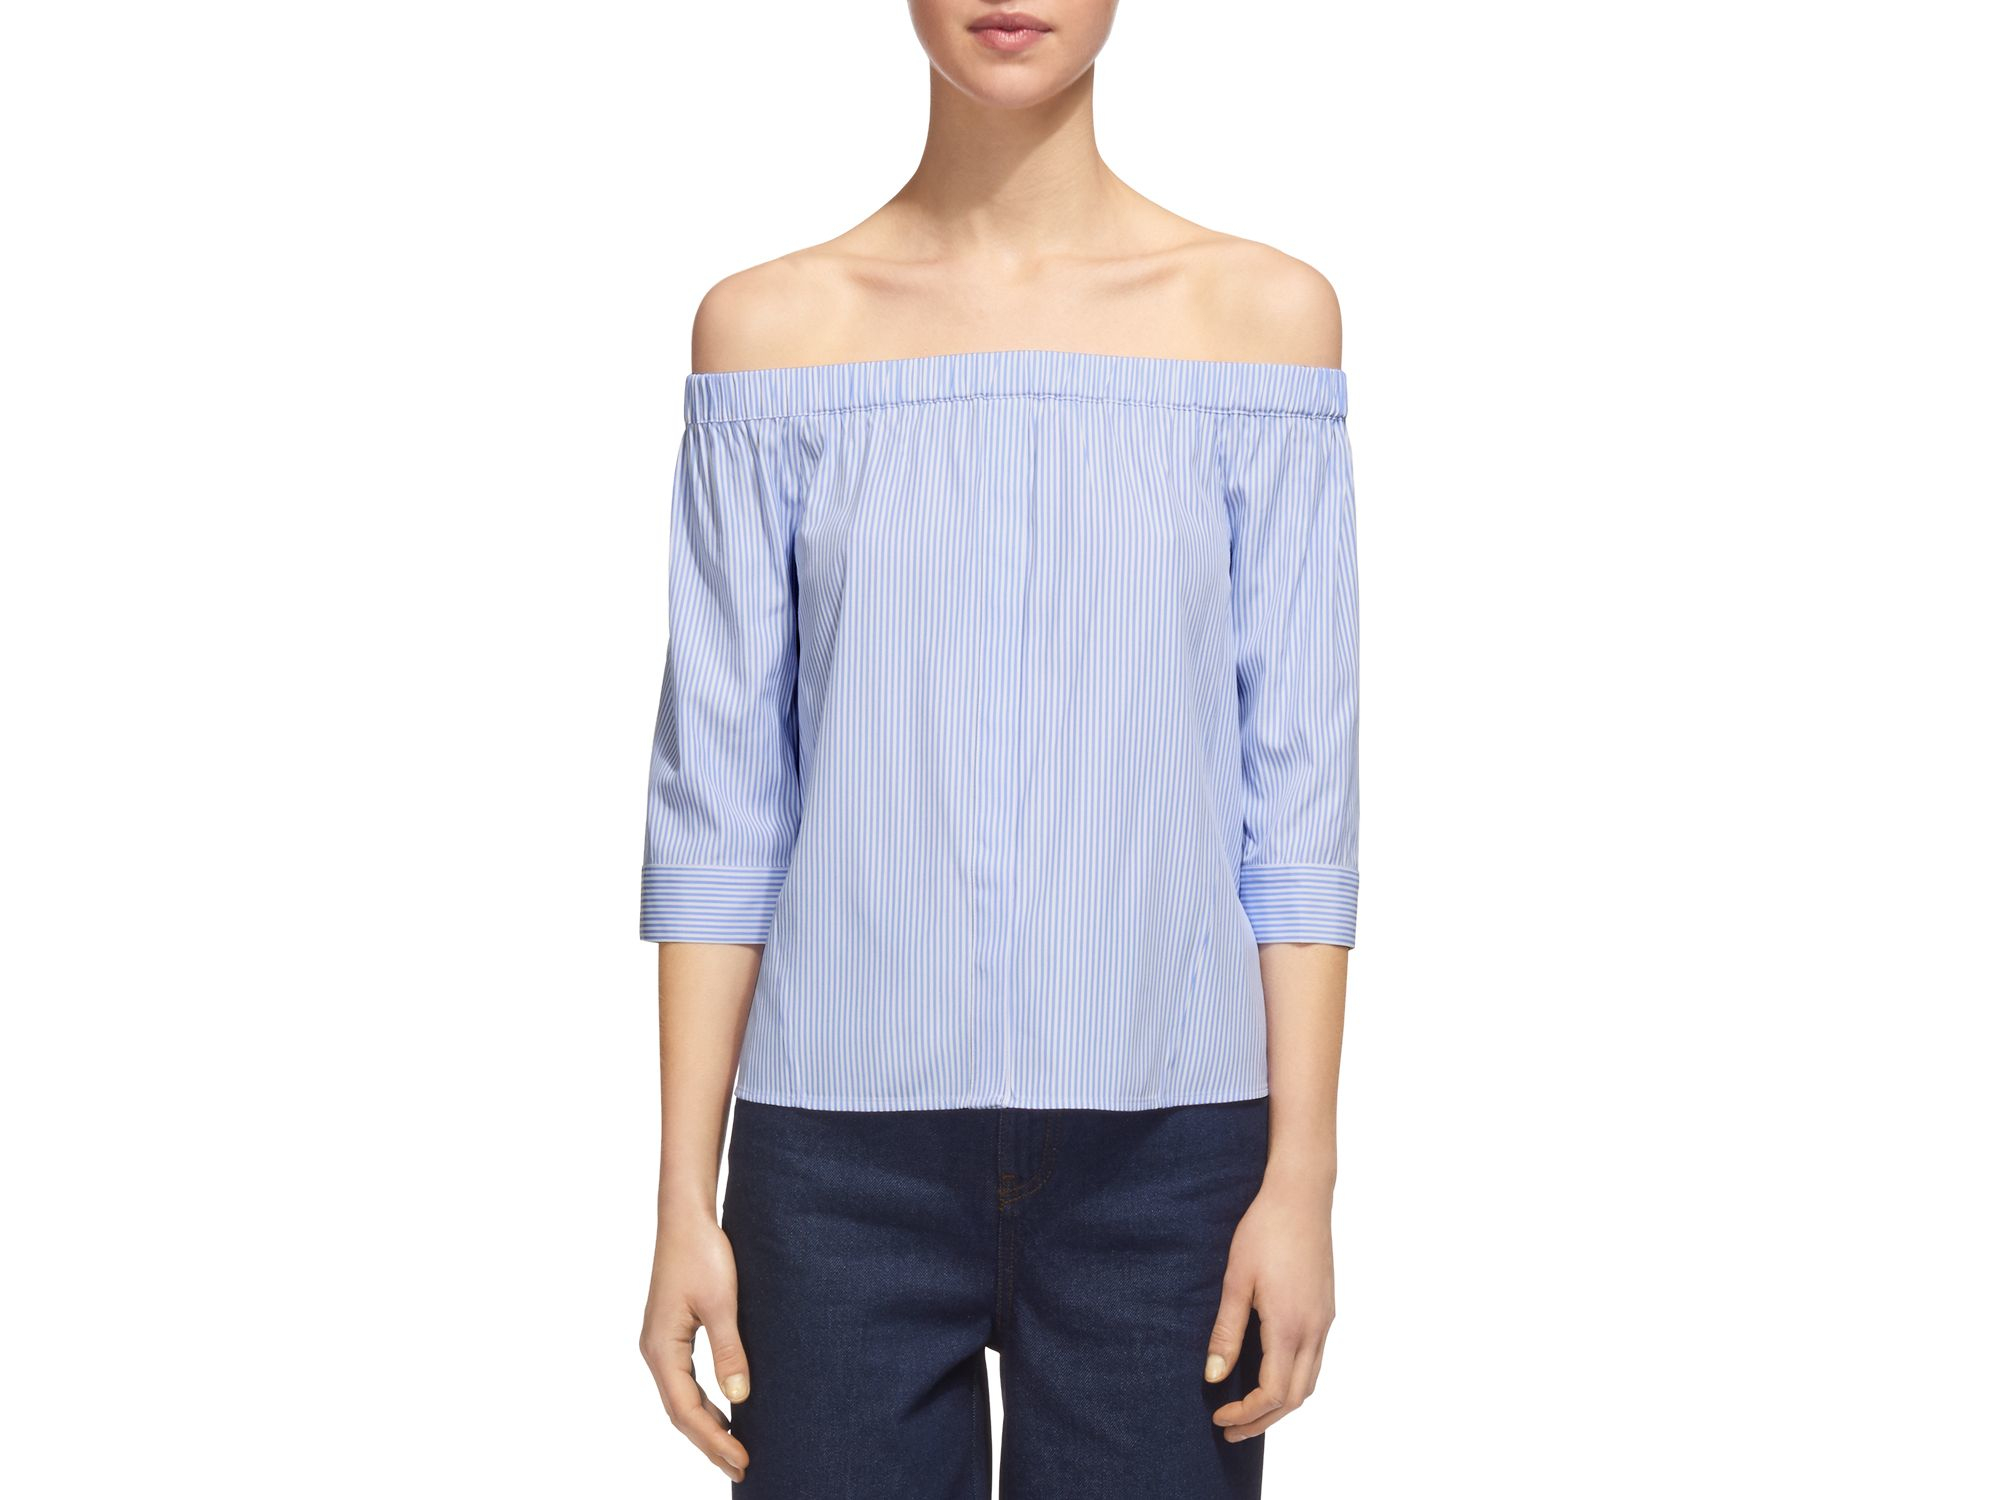 7a217d0d1dd7c Whistles Off-the-shoulder Striped Bardot Top in Blue - Lyst